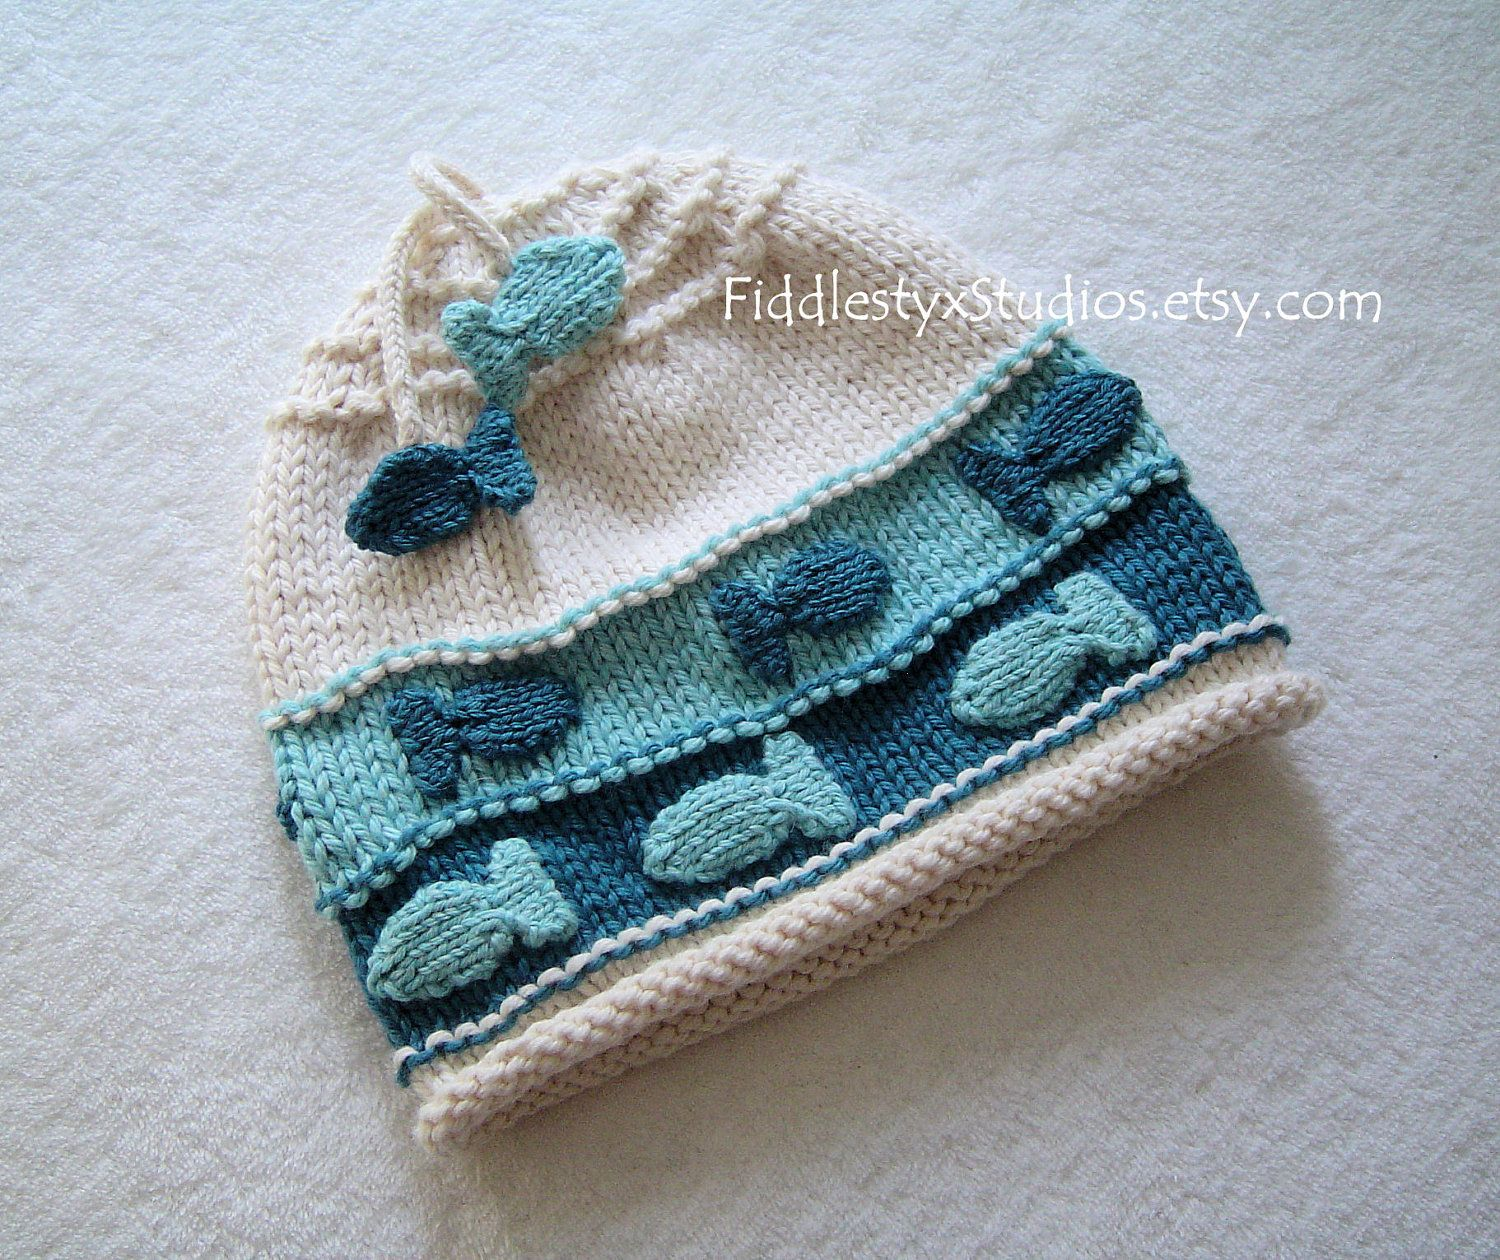 Eco friendly baby fish hat newborn boy photo prop teal cotton eco friendly baby fish hat newborn boy photo prop teal cotton knitted infant toddler cap hand bankloansurffo Choice Image